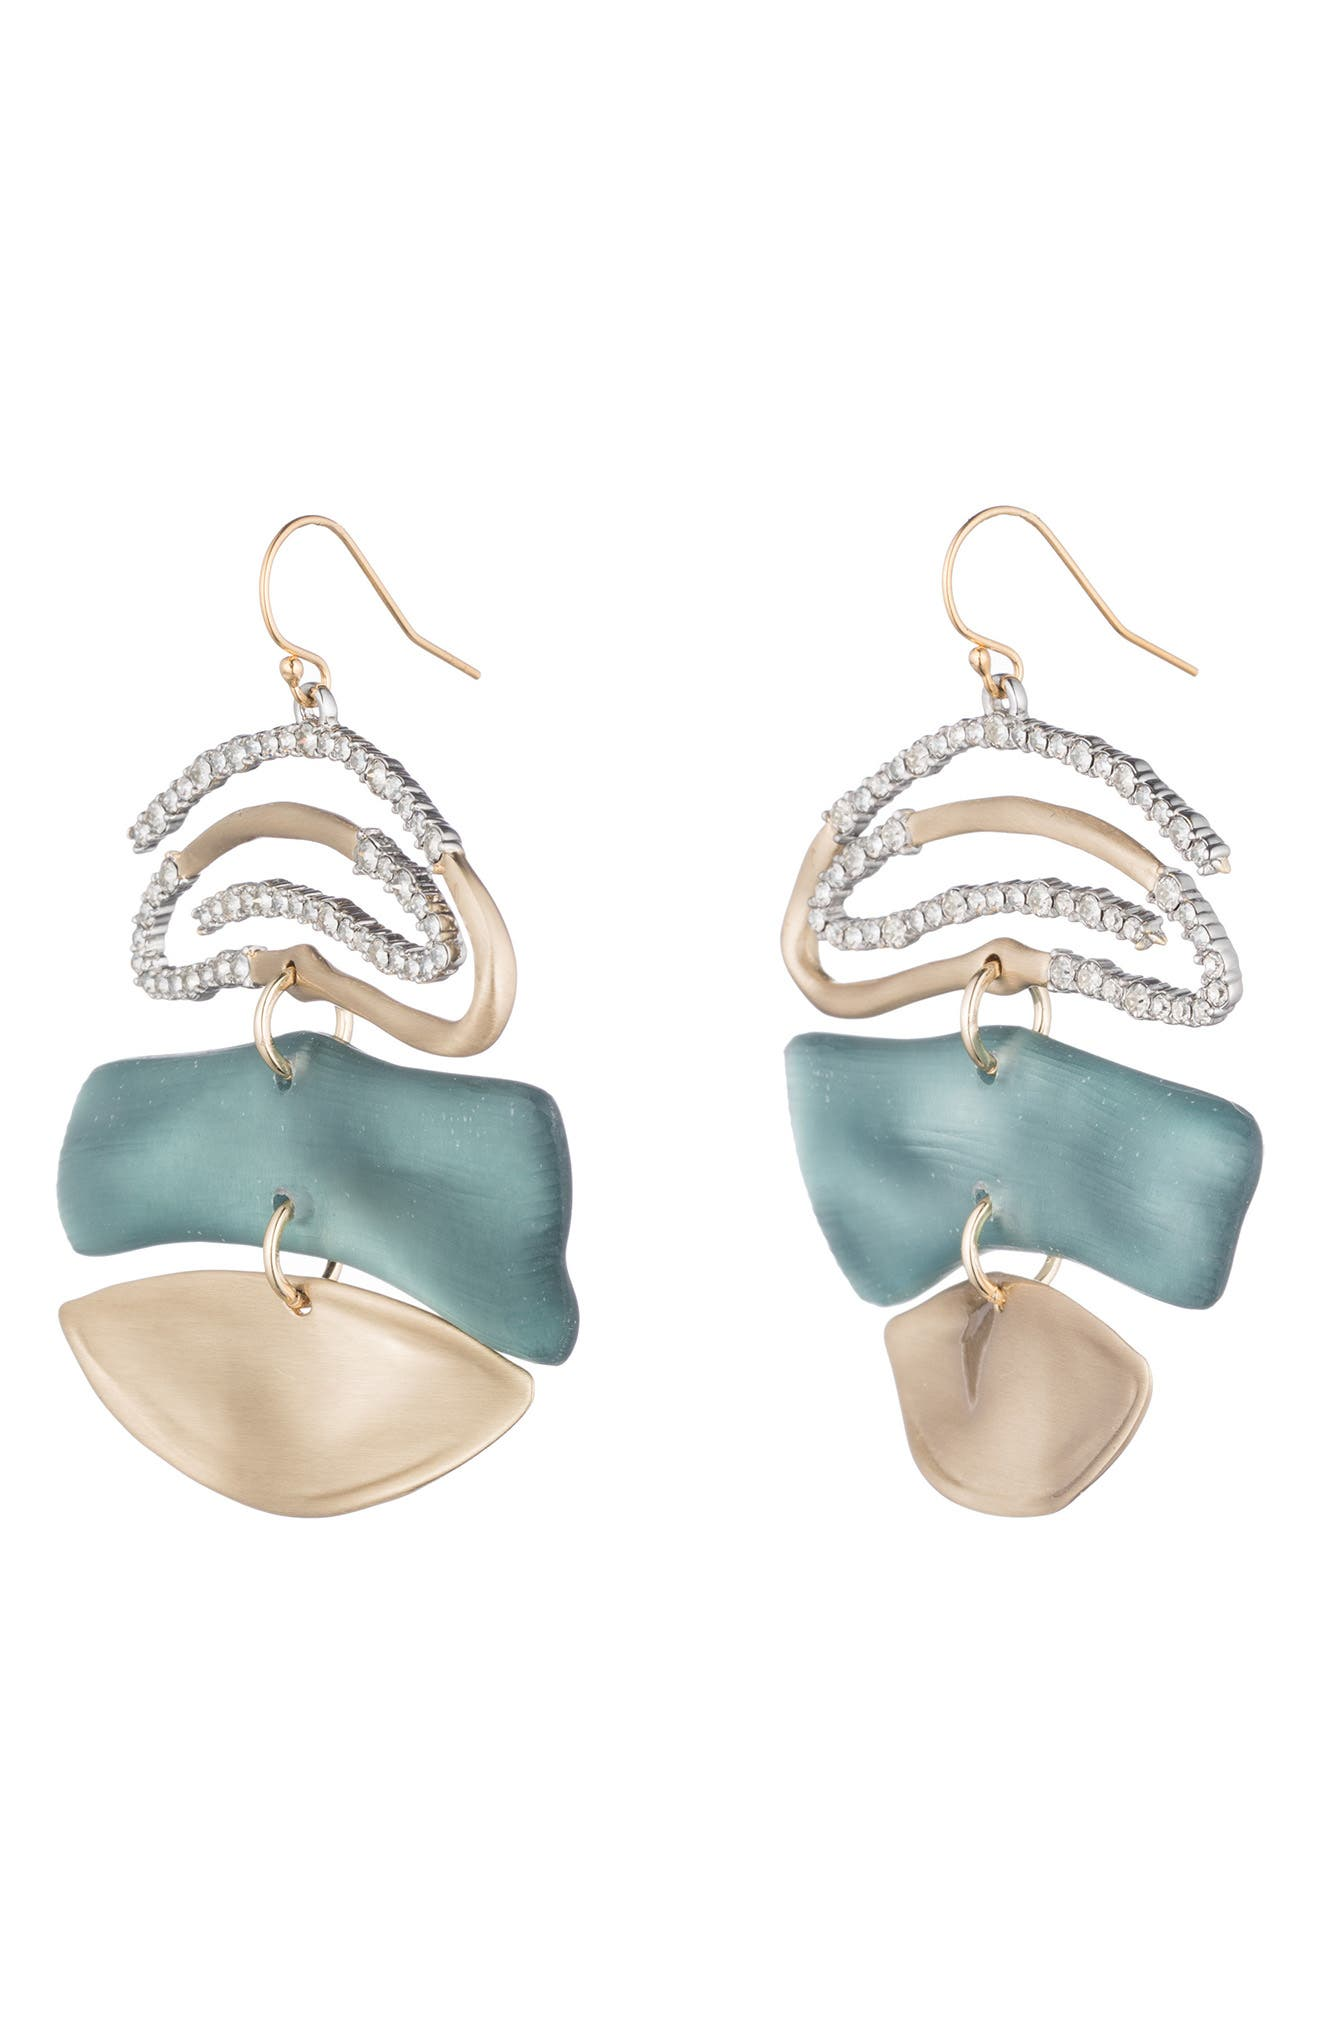 ALEXIS BITTAR,                             Crystal Encrusted Spiral Mobile Earrings,                             Alternate thumbnail 2, color,                             440